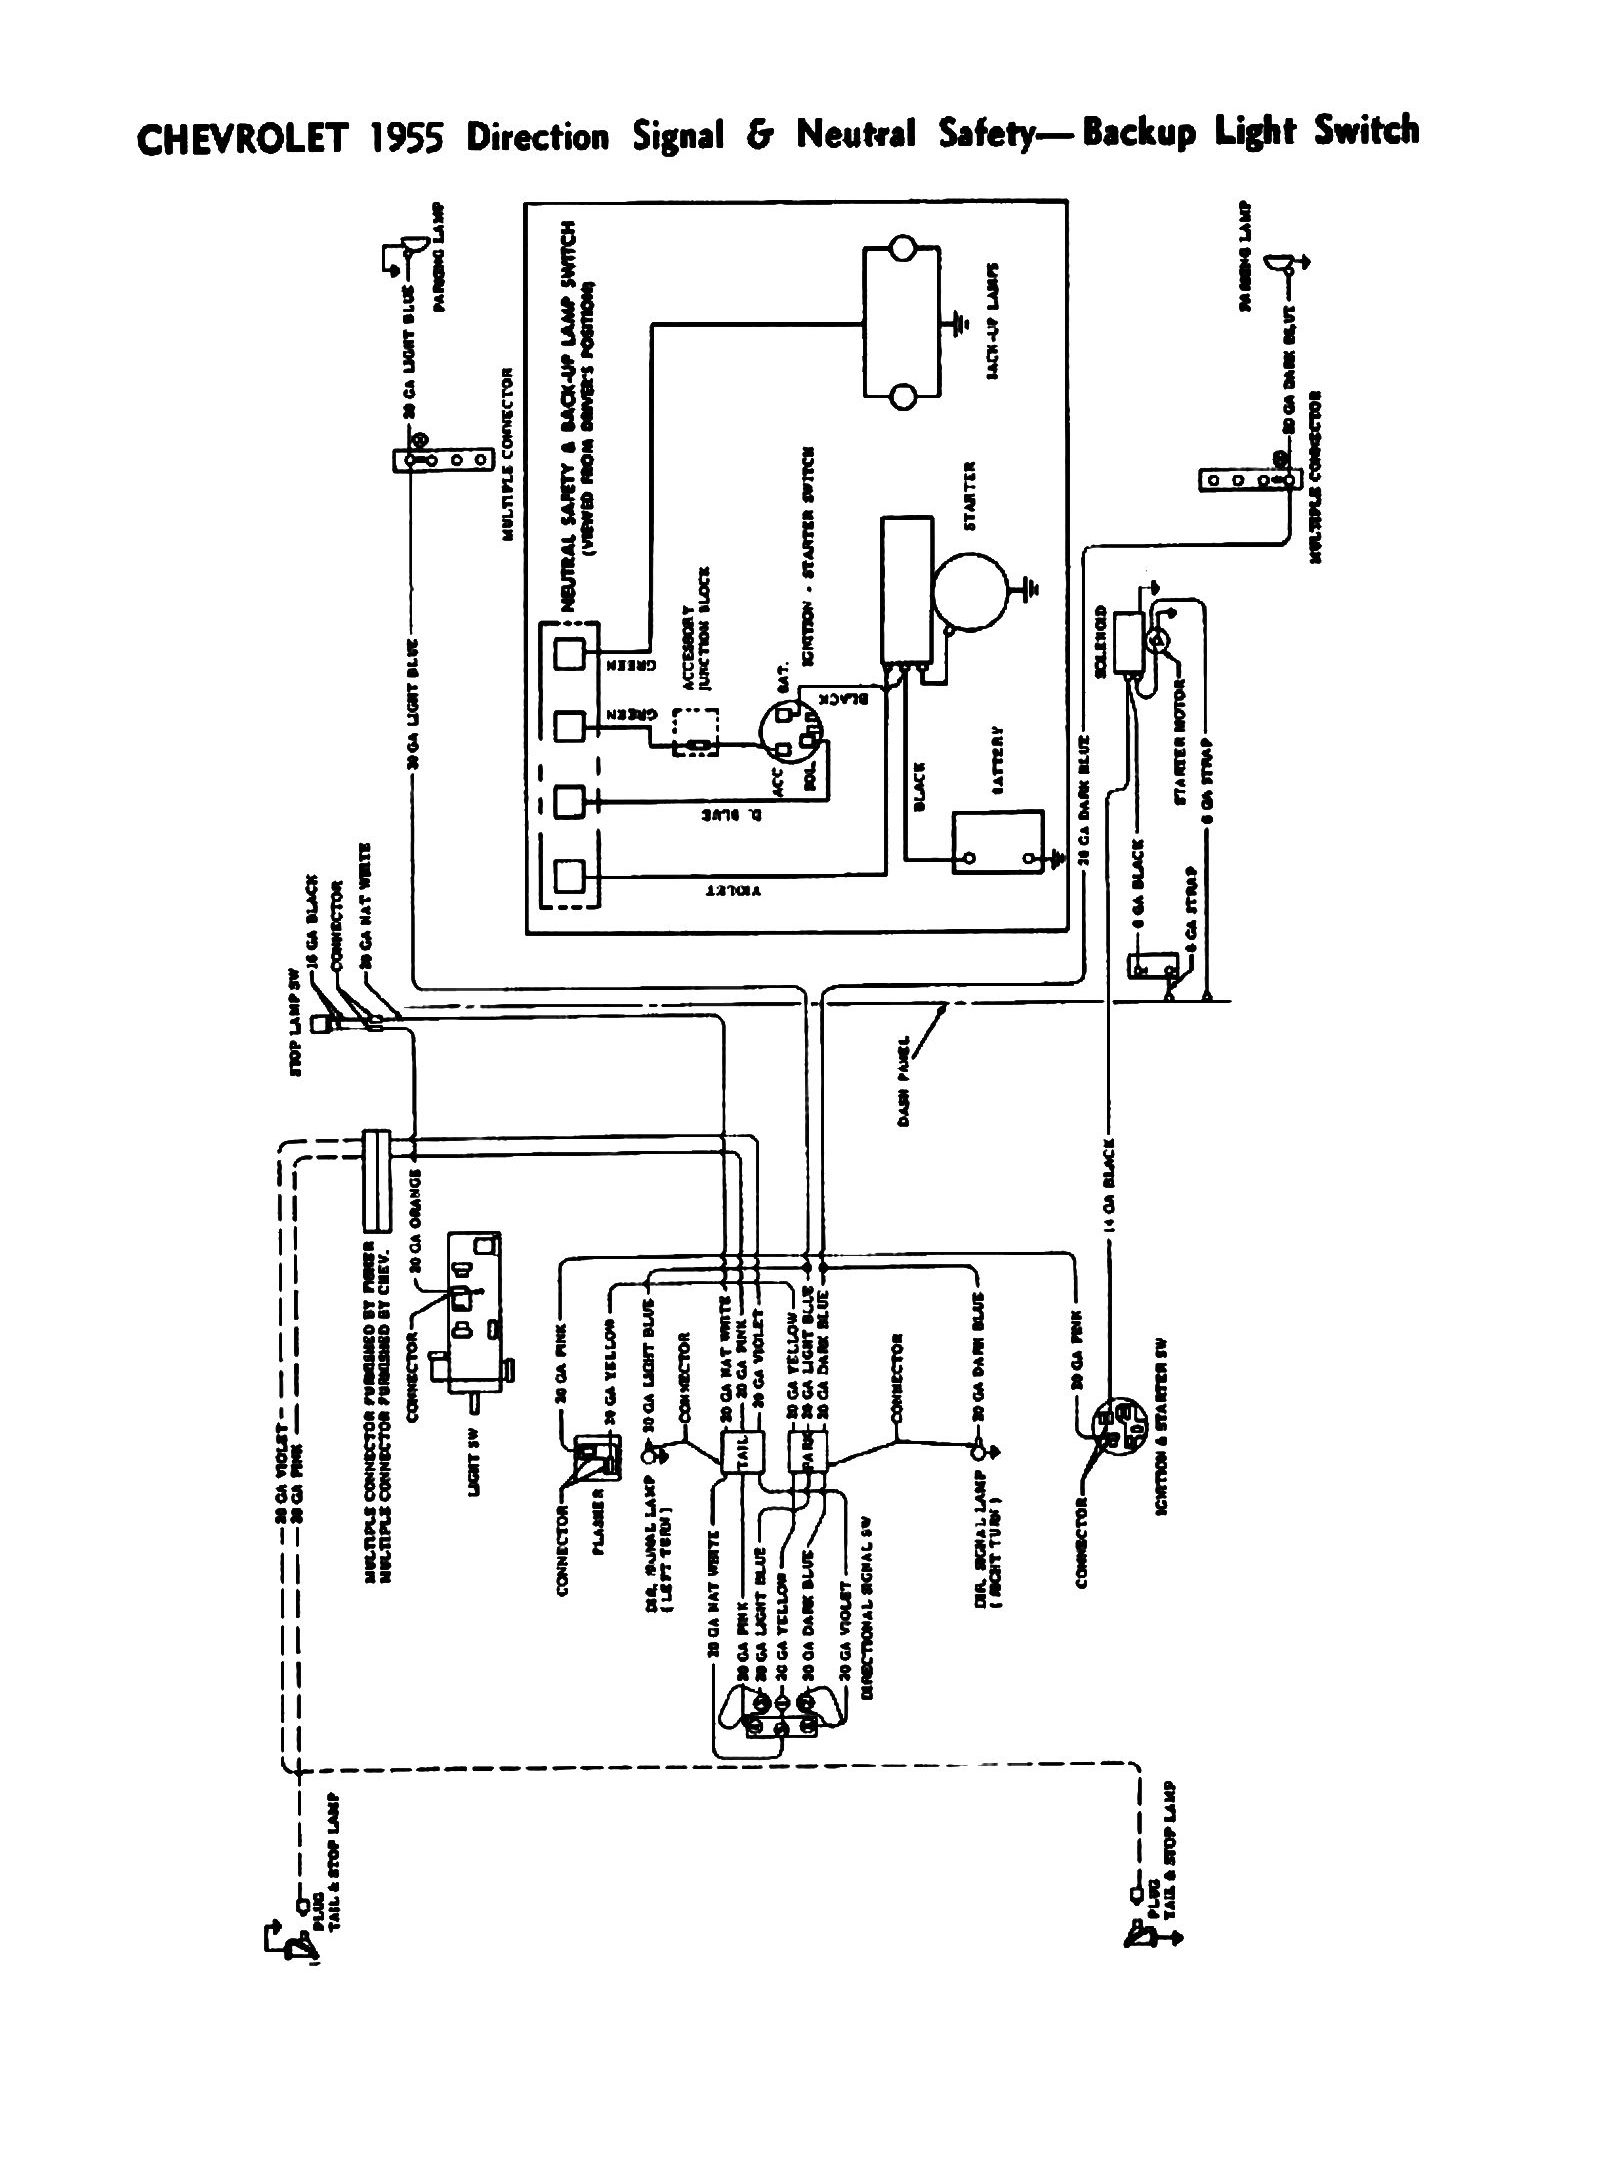 hight resolution of 1950 dodge truck wiring diagram wiring diagram third level 1984 dodge truck wiring diagram 1955 dodge truck wiring diagram